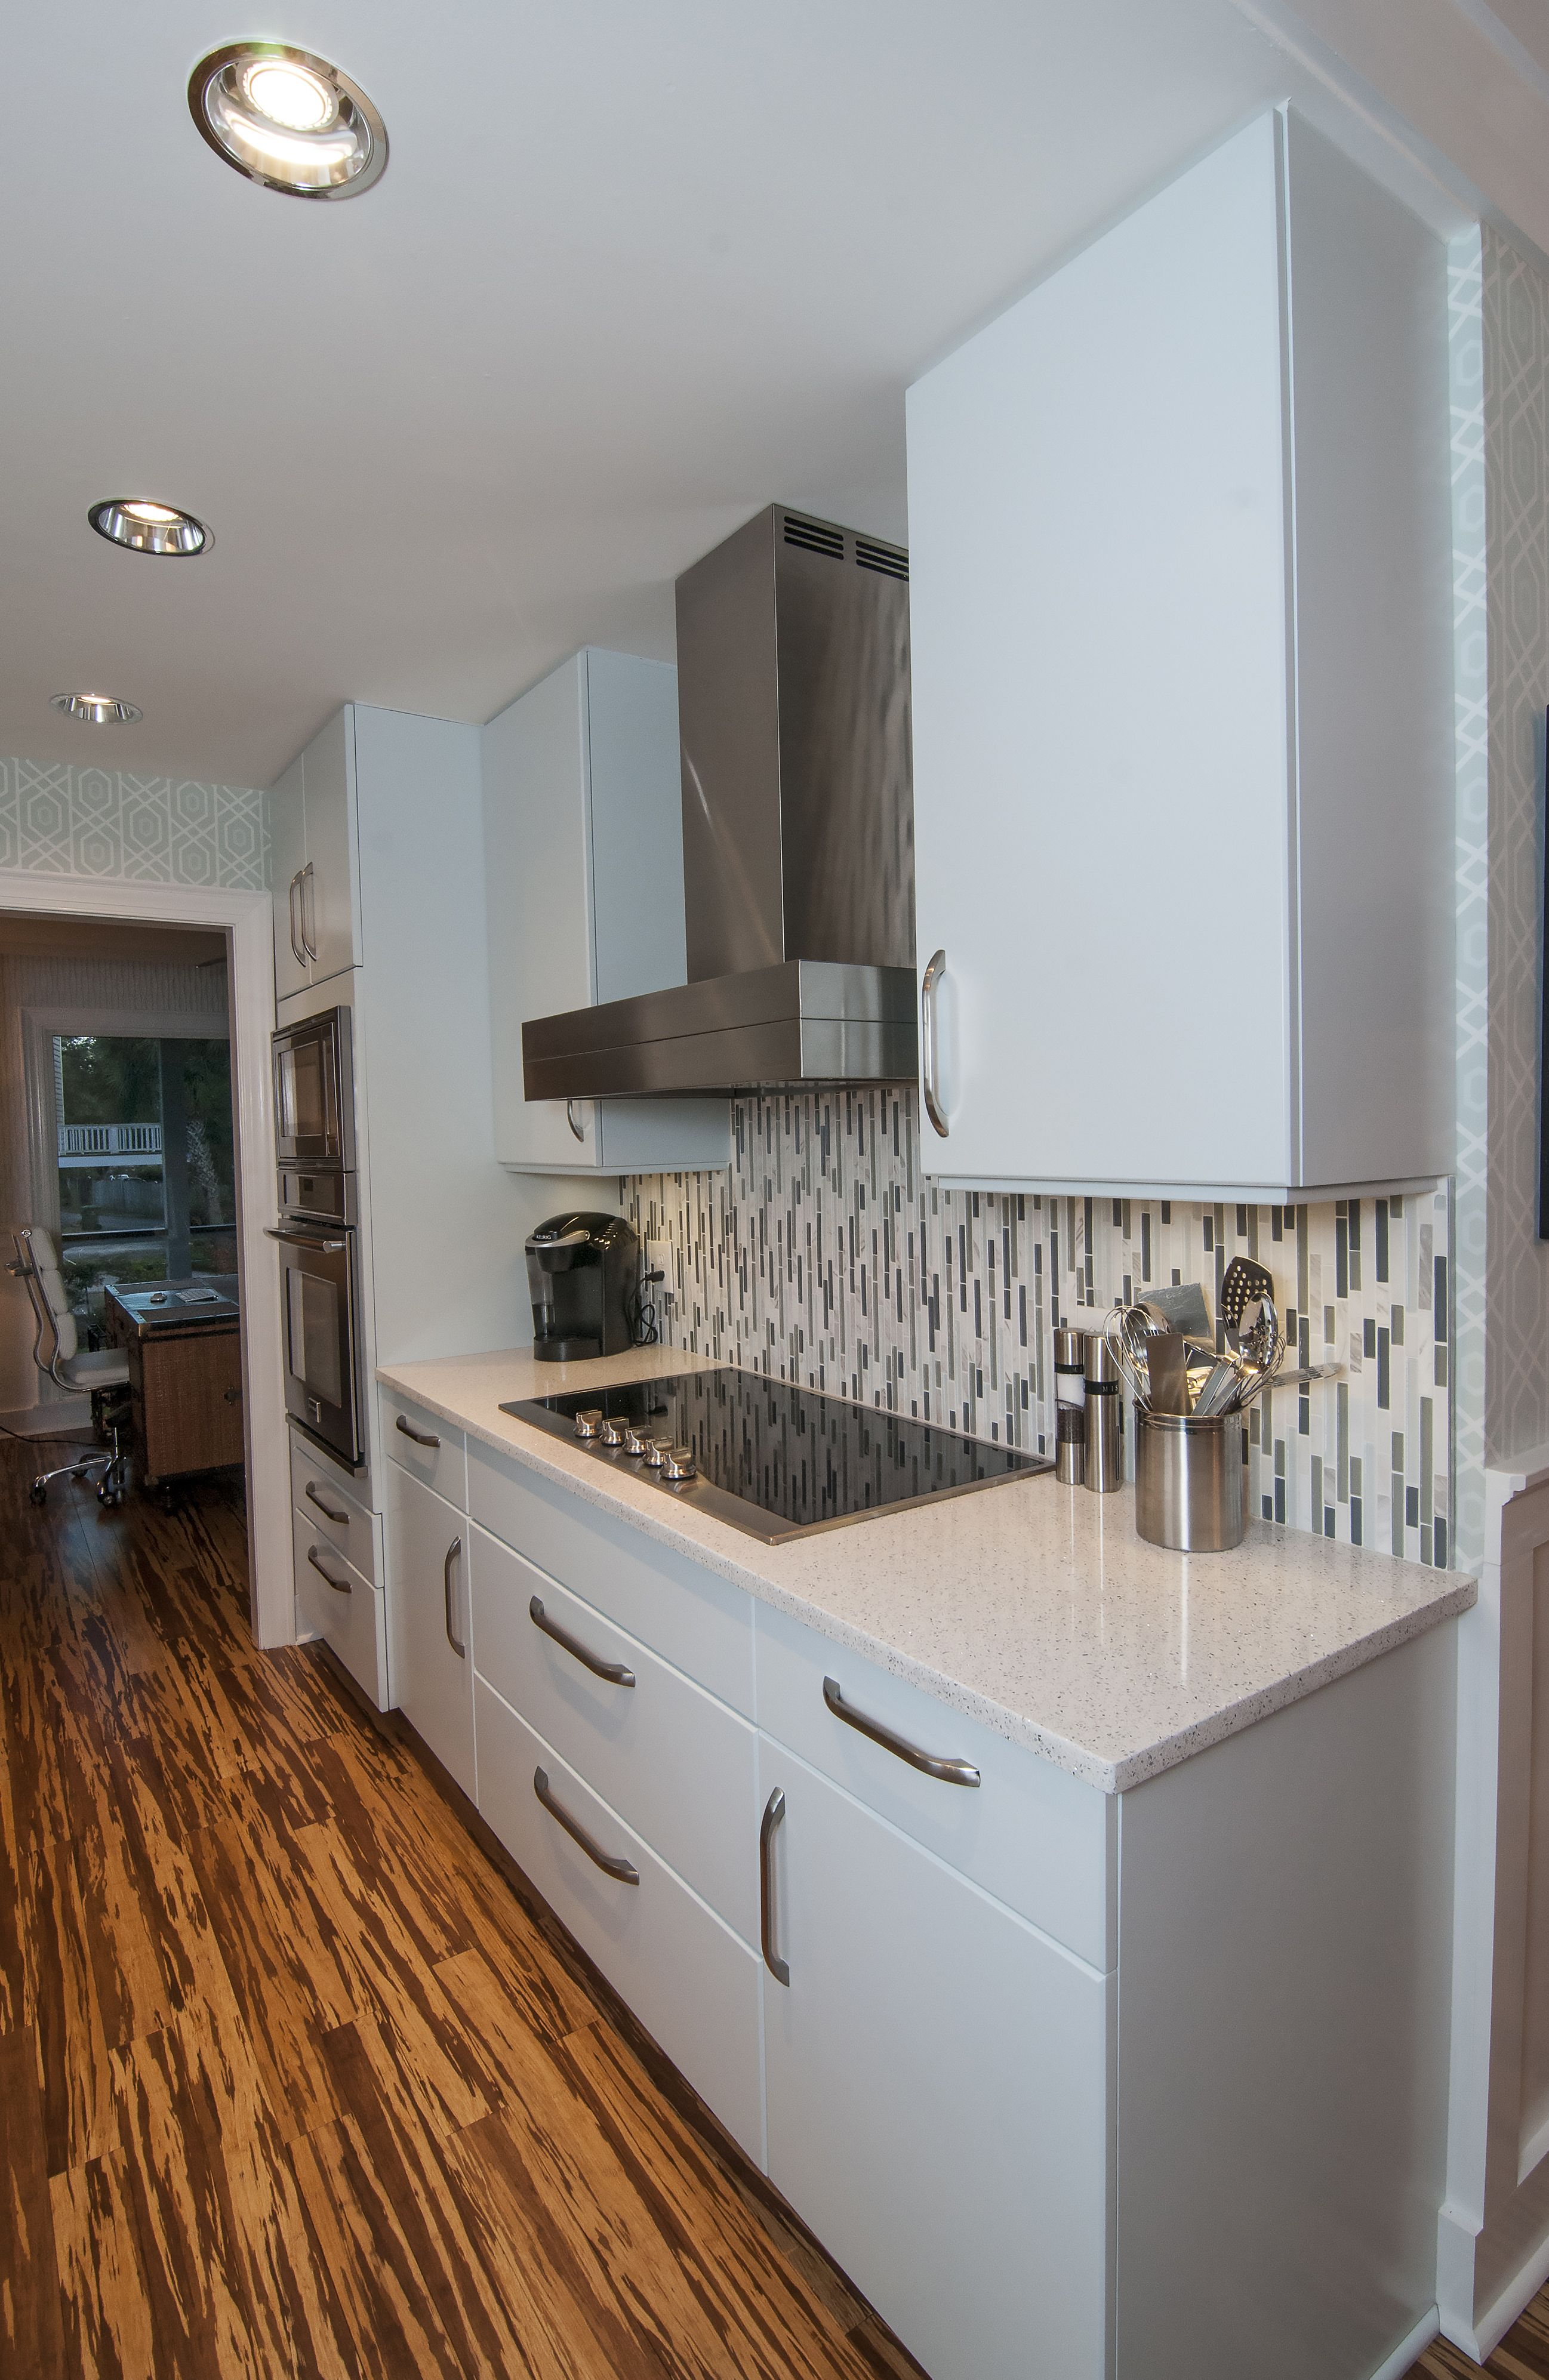 Cabico Cabinetry, Bliss Tile Back Splash, And Whitney Cambria Quartz  Countertops. Backsplash